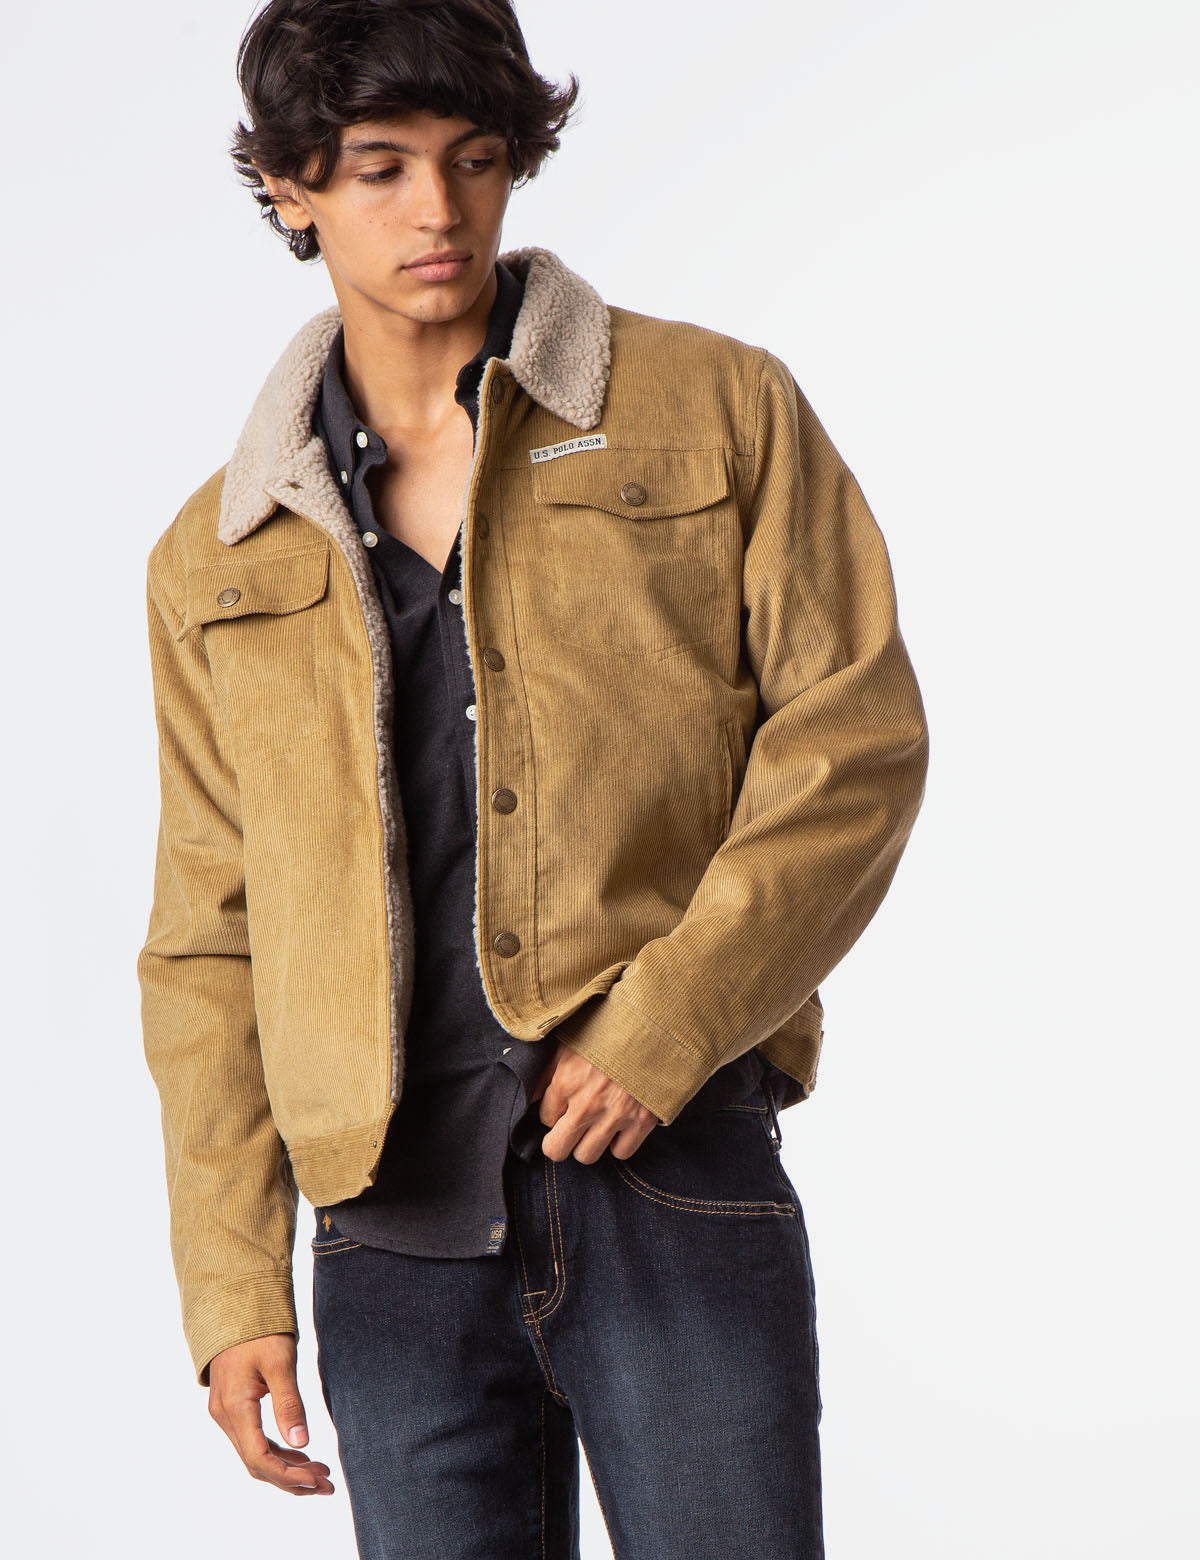 CANVAS CORDUROY JACKET - U.S. Polo Assn.